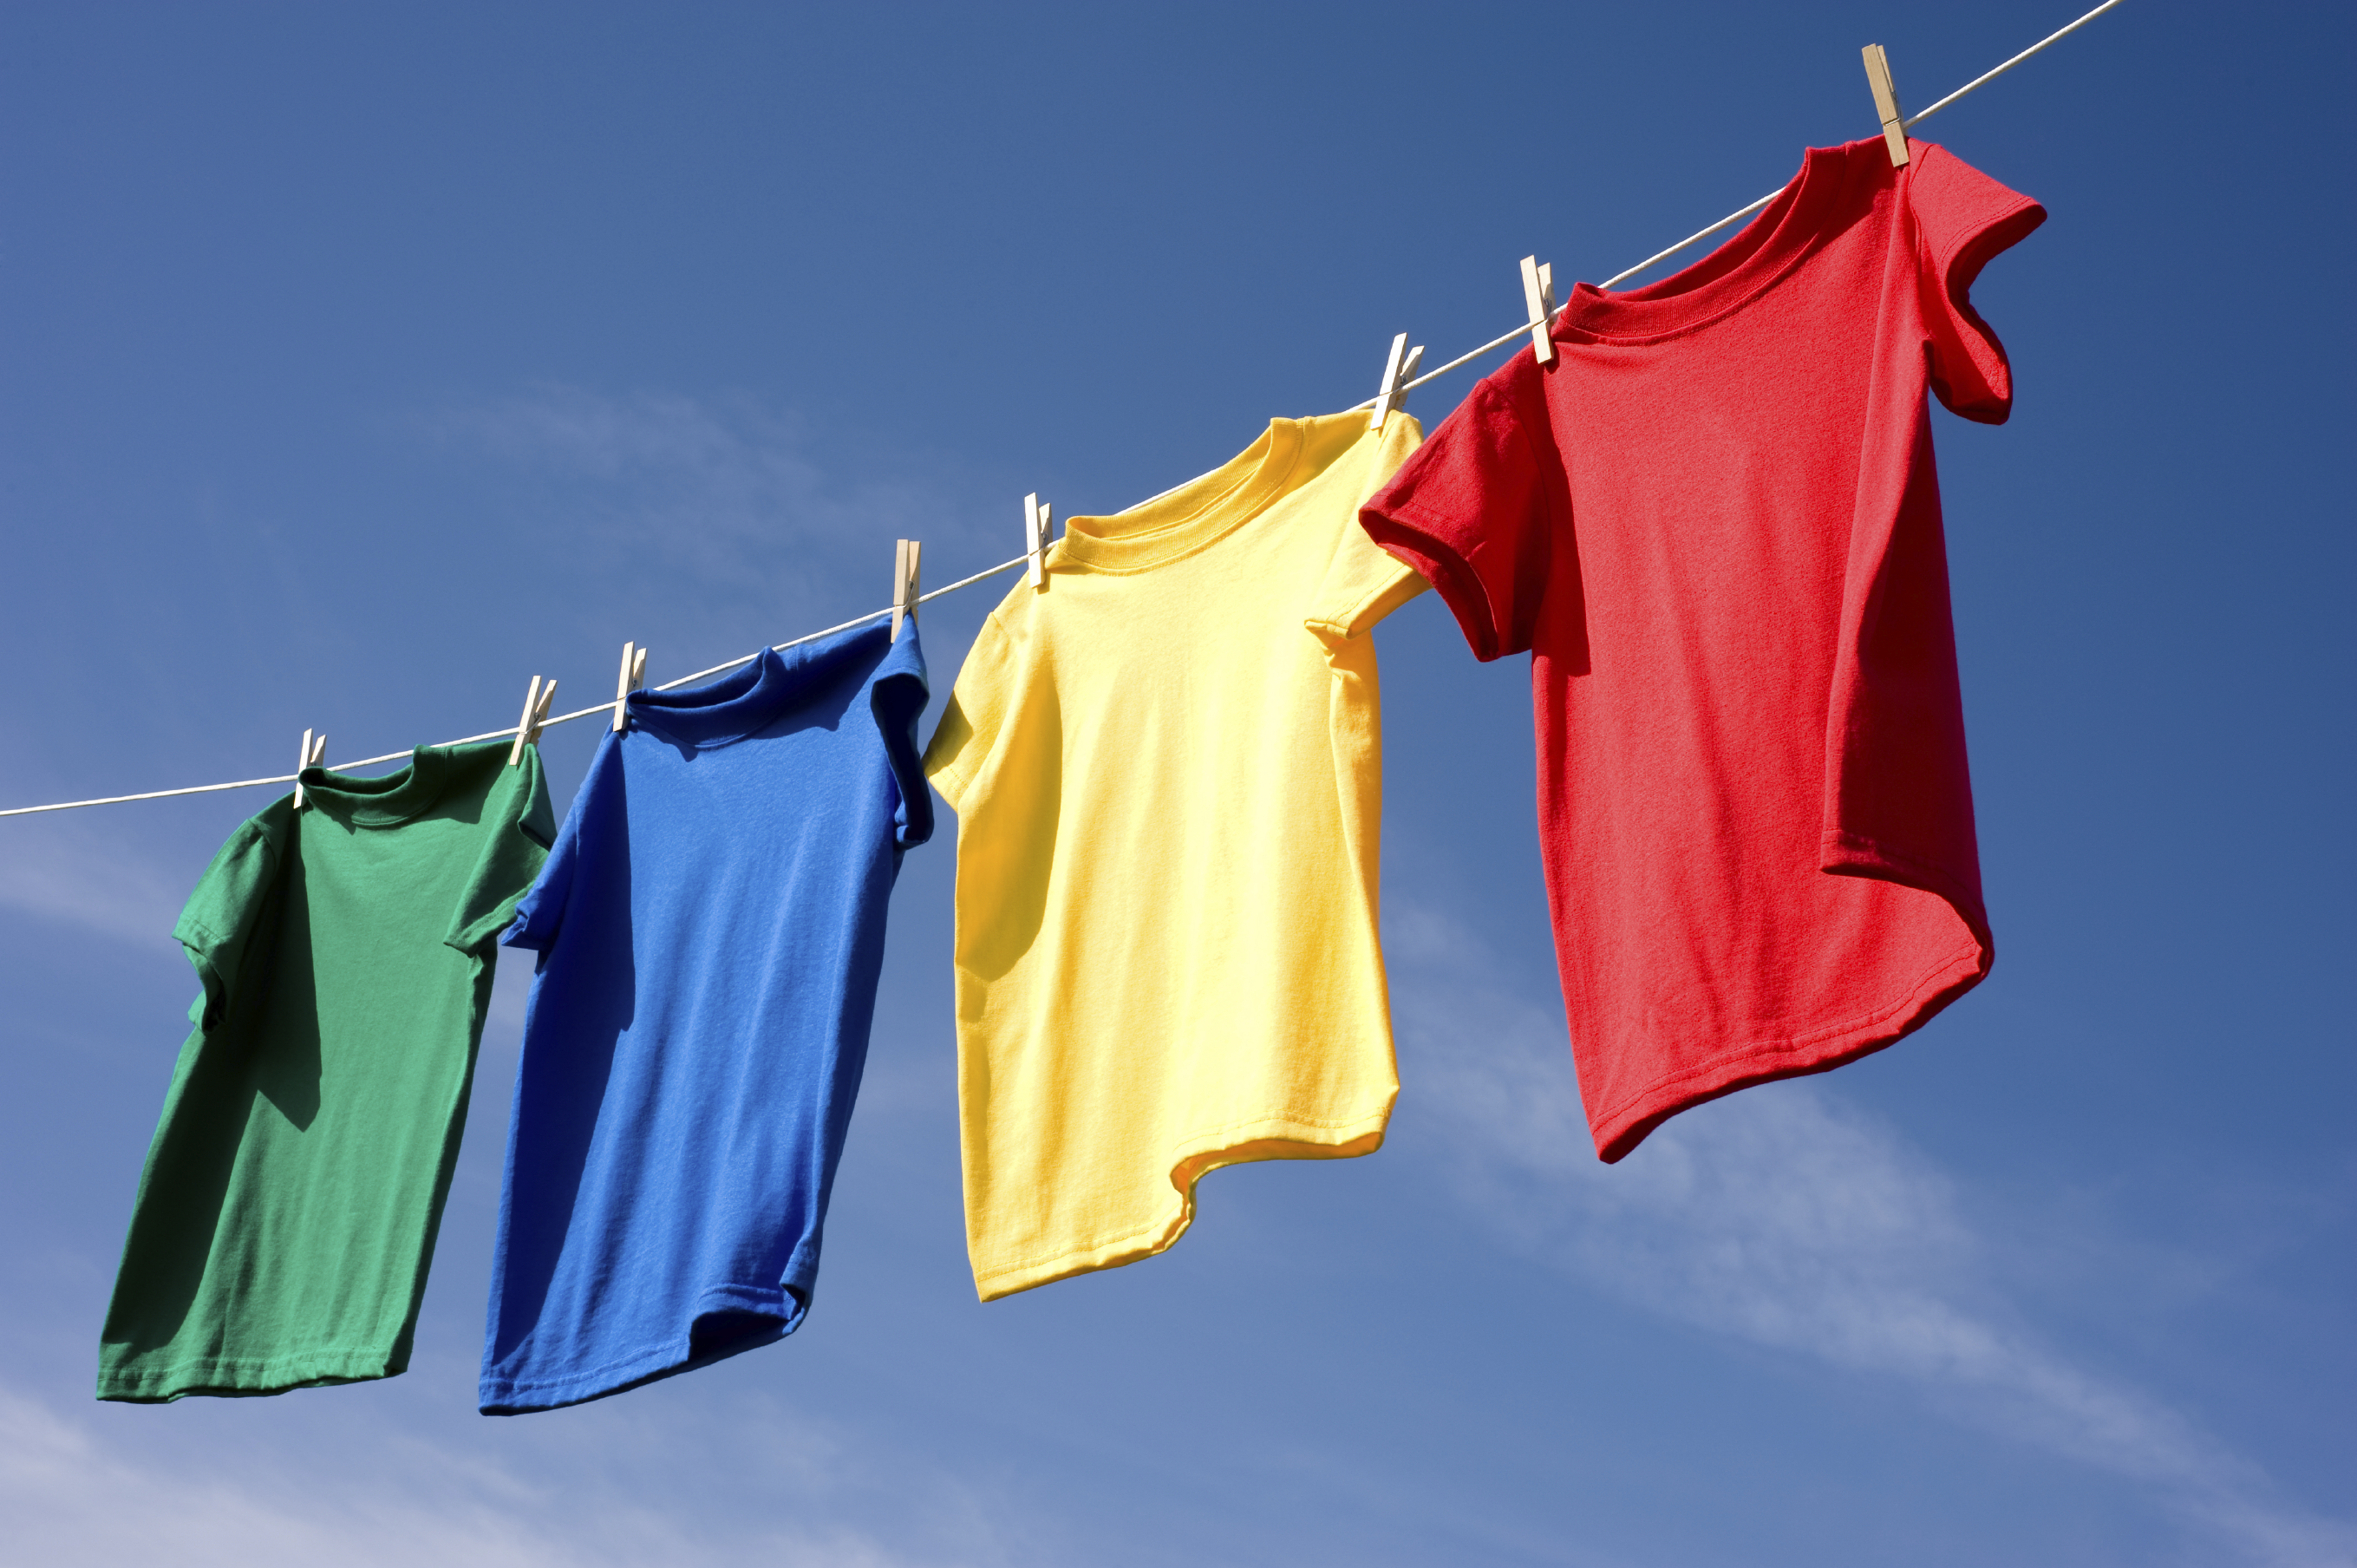 How to Make a Picture Clothesline